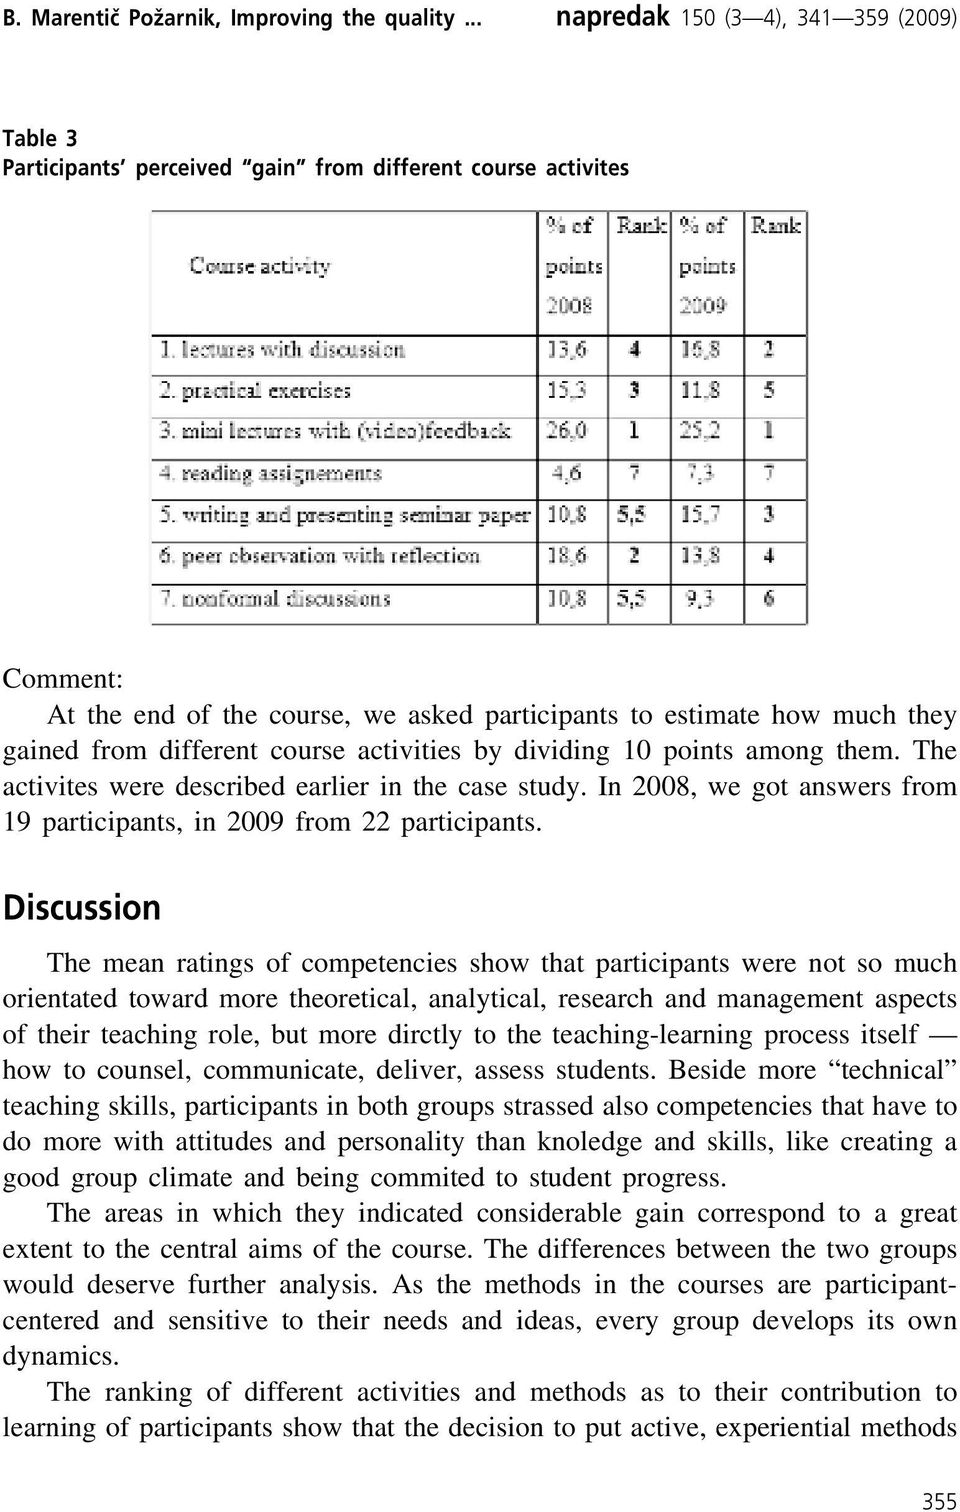 Discussion The mean ratings of competencies show that participants were not so much orientated toward more theoretical, analytical, research and management aspects of their teaching role, but more